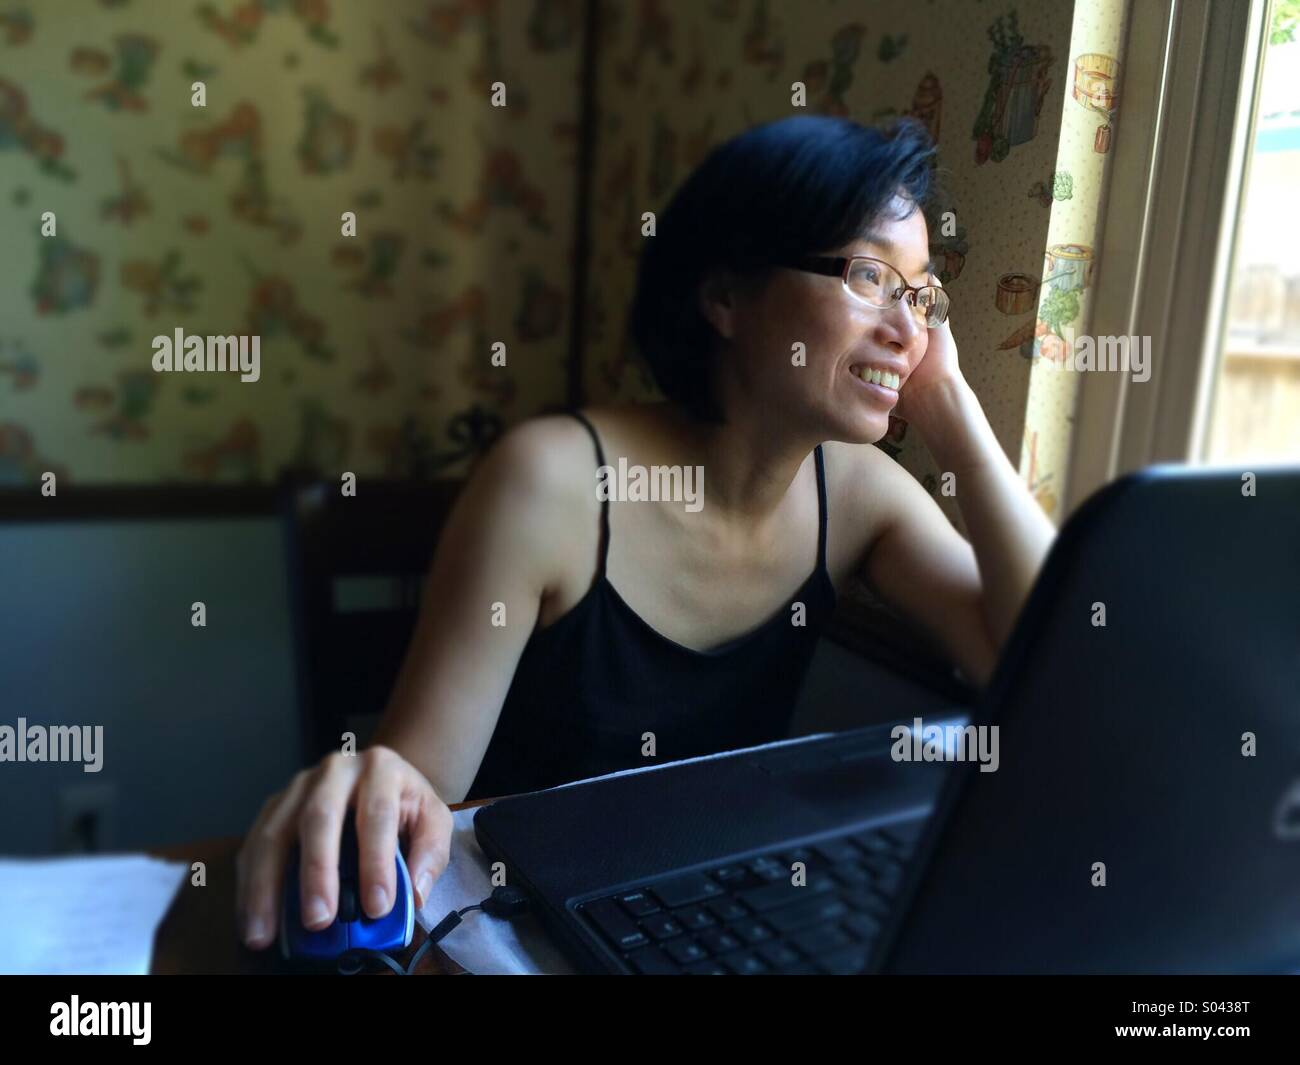 Asian woman smiling and looking out a window while using a laptop computer at home - Stock Image